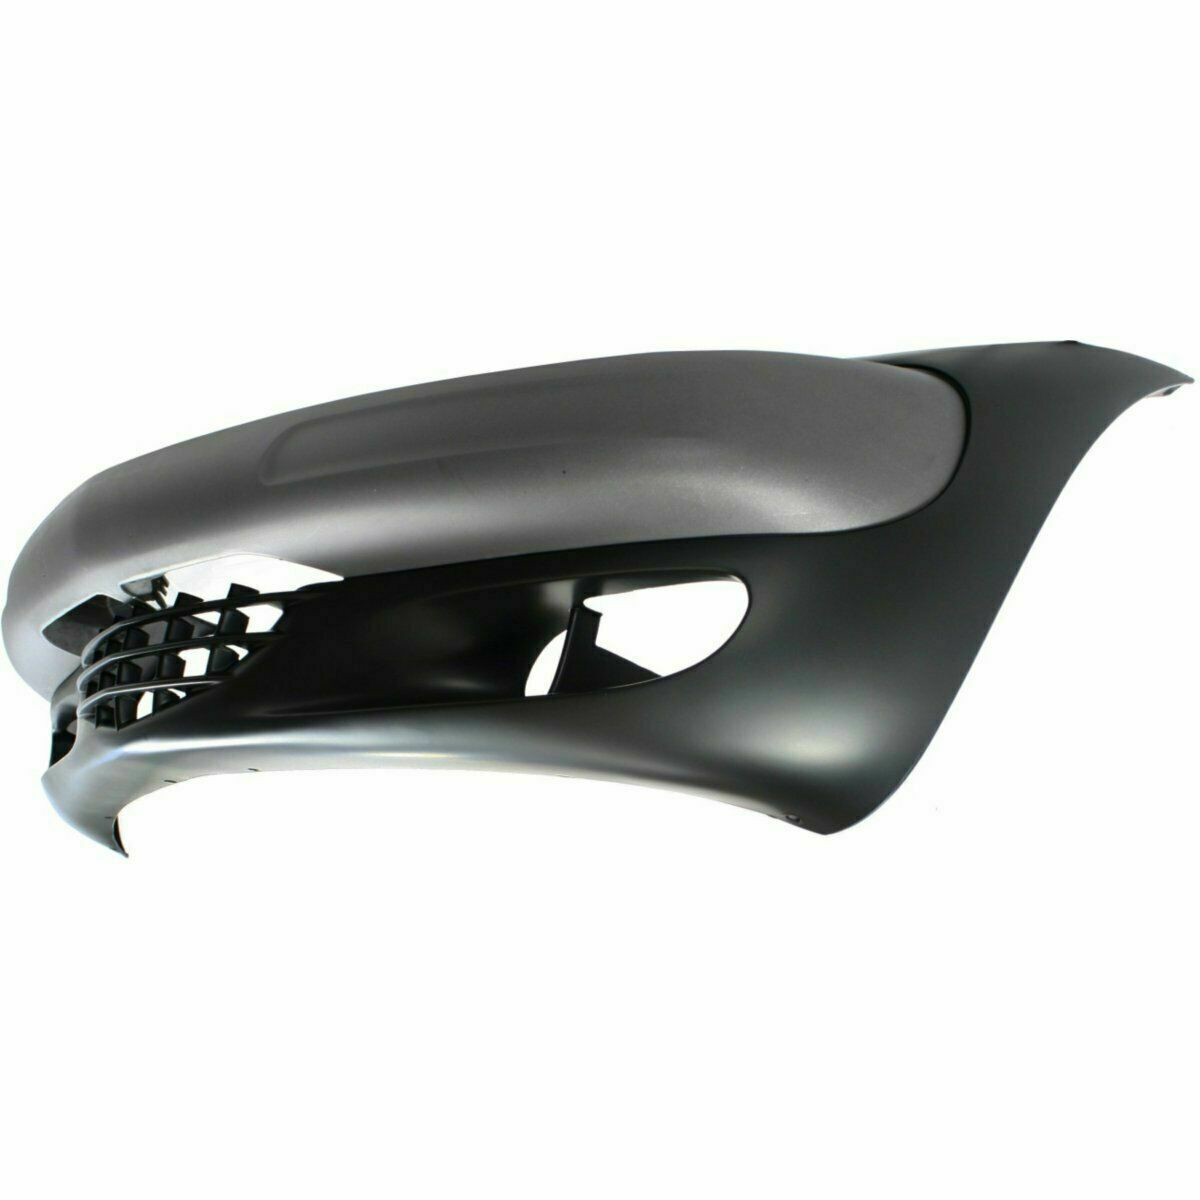 2001-2005 Chrysler PT Cruiser Front Bumper (middle portion unpainted textured) Painted to Match